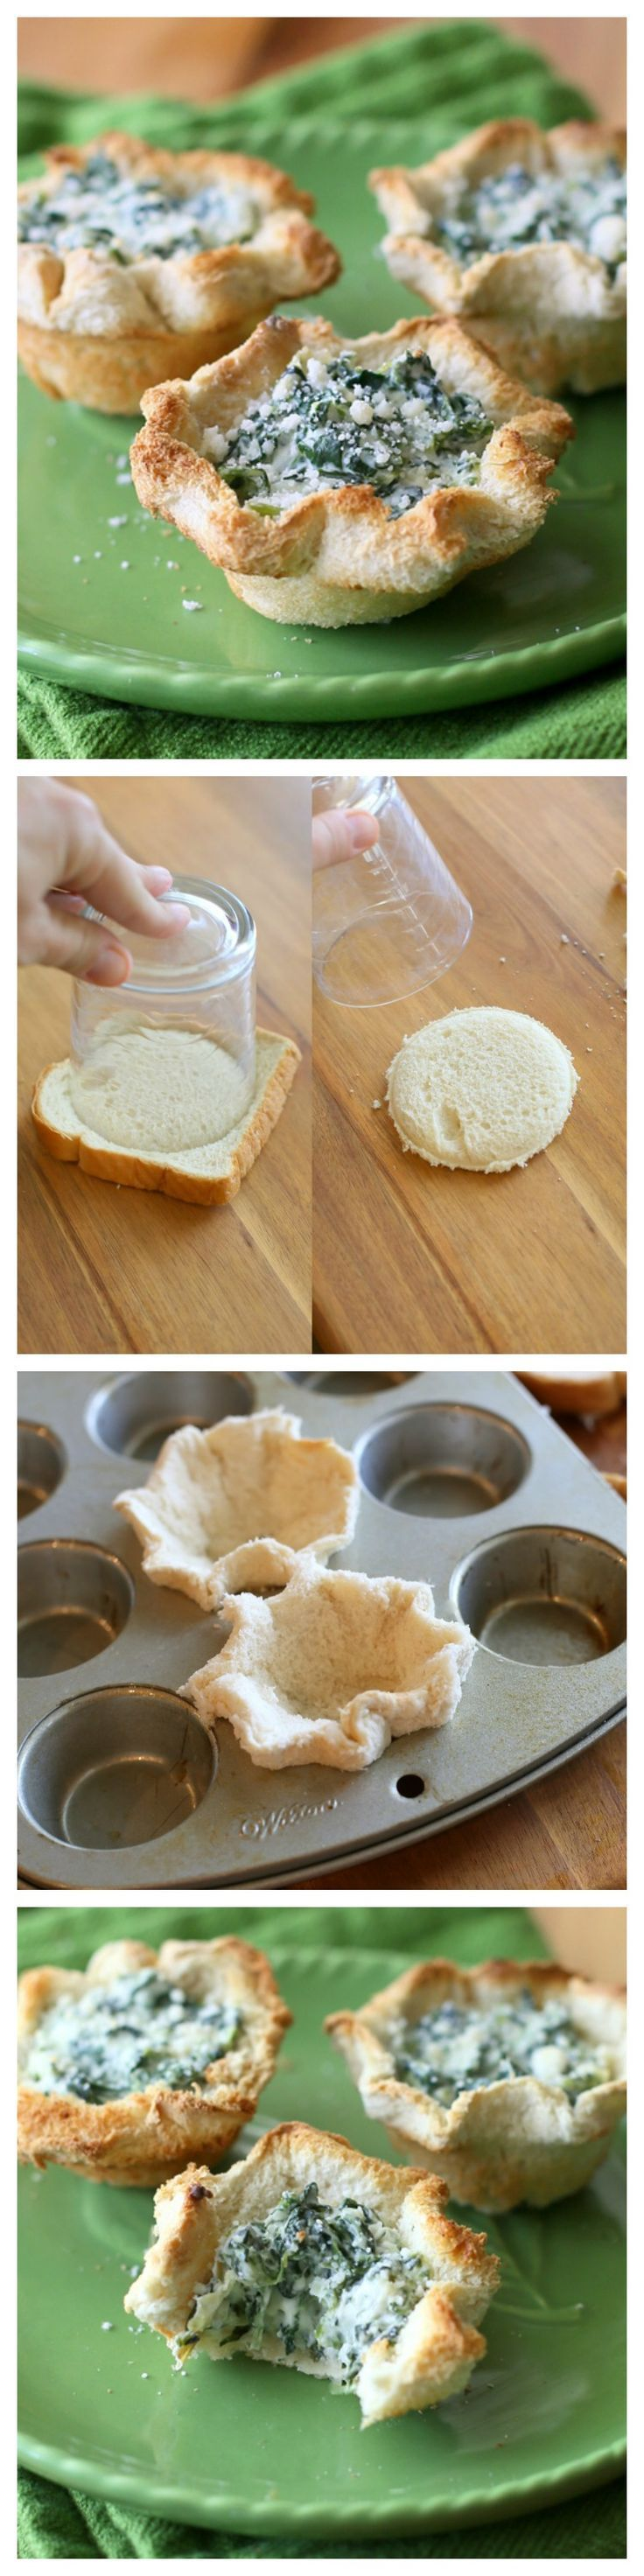 Spinach Artichoke Cups - spinach dip in an easy homemade bread shell. Dip and dipper in one! the-girl-who-ate-...